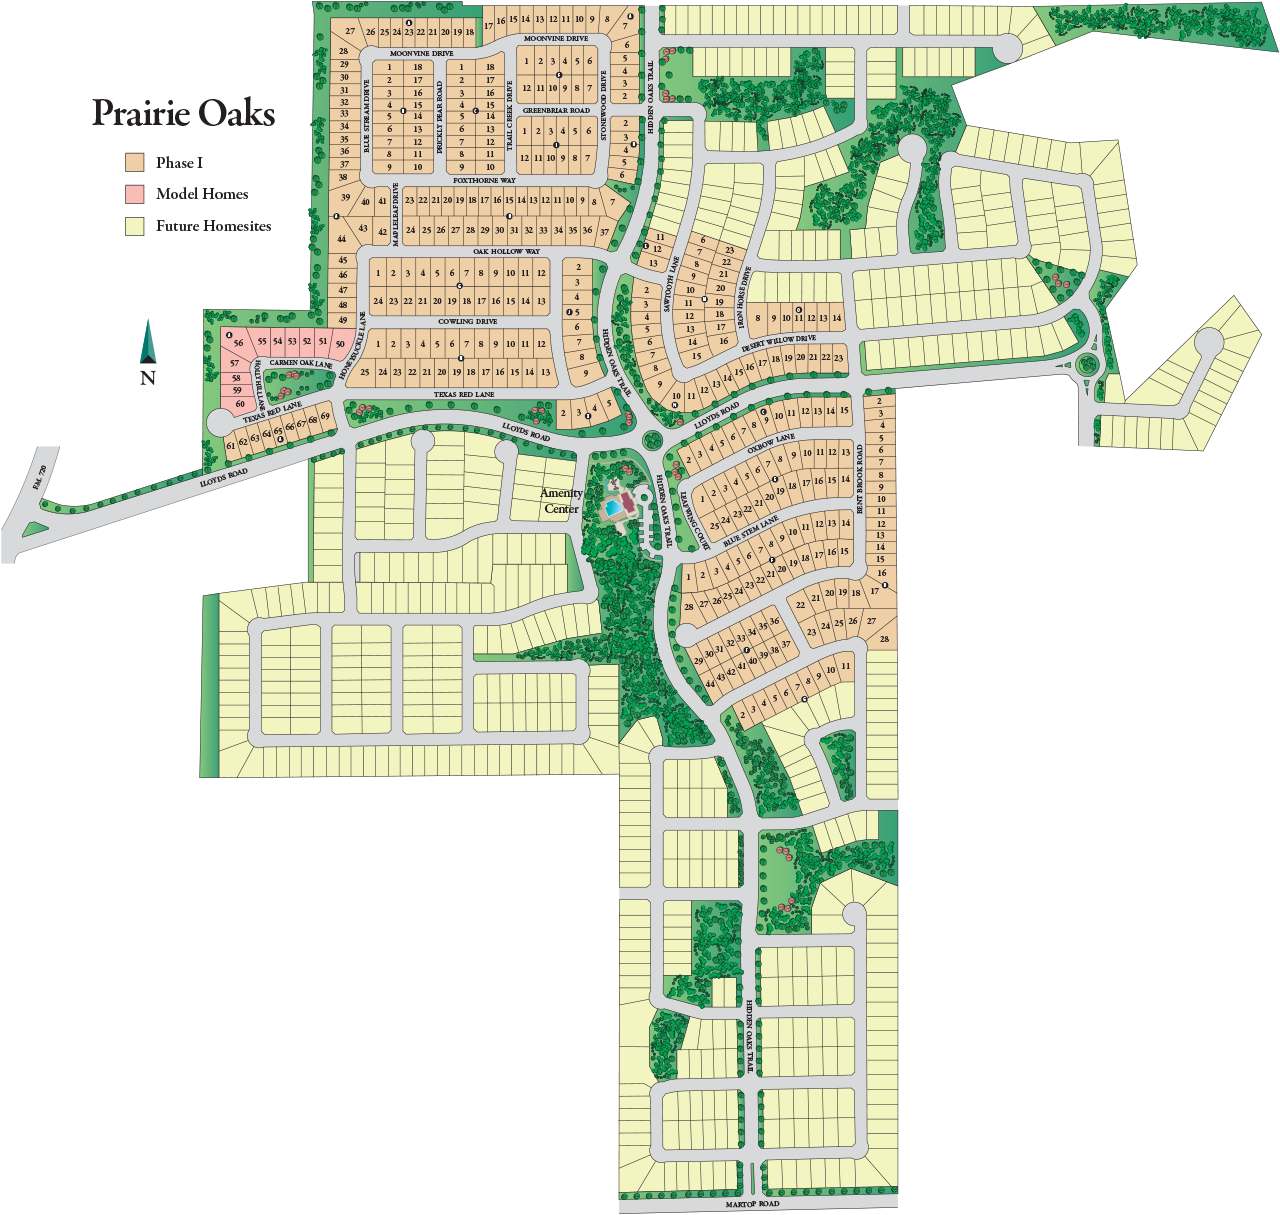 Prairie Oaks Overall Community Siteplan